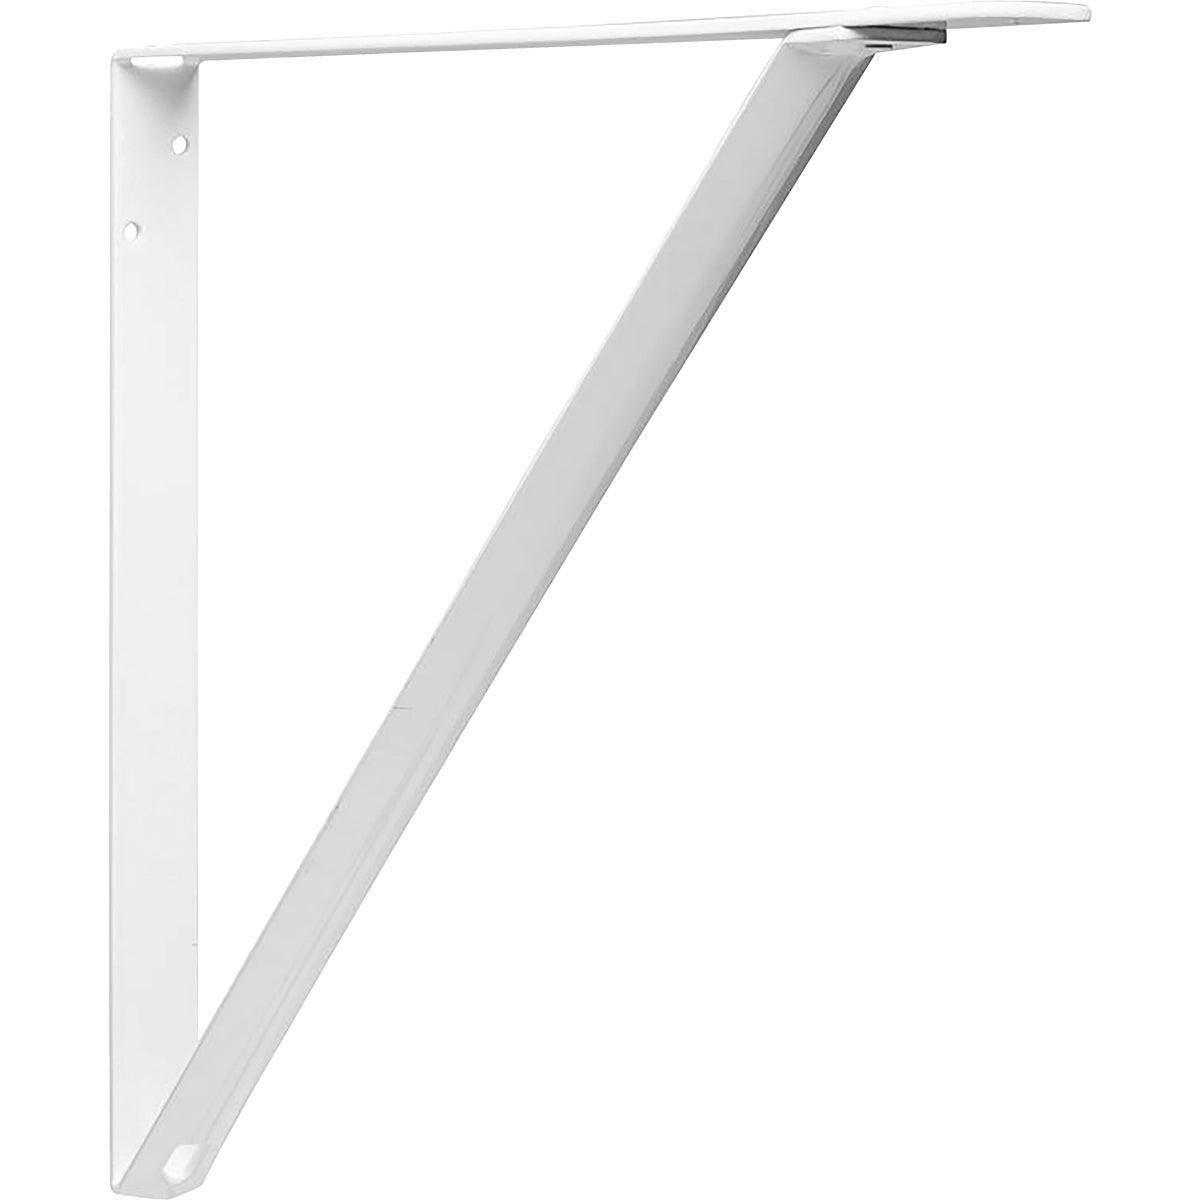 16X18 SHELF BRACKET